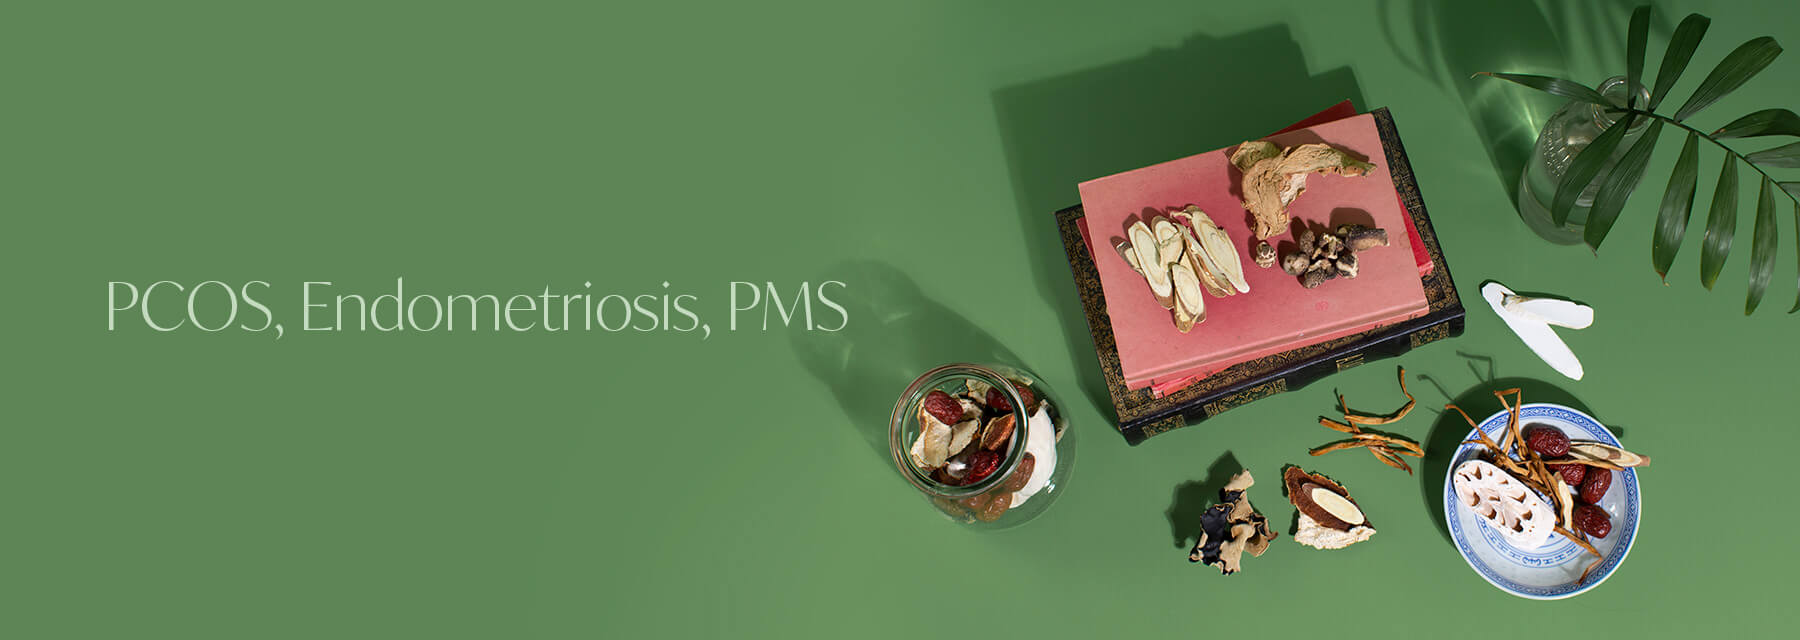 PCOS, Endometriosis and PMS